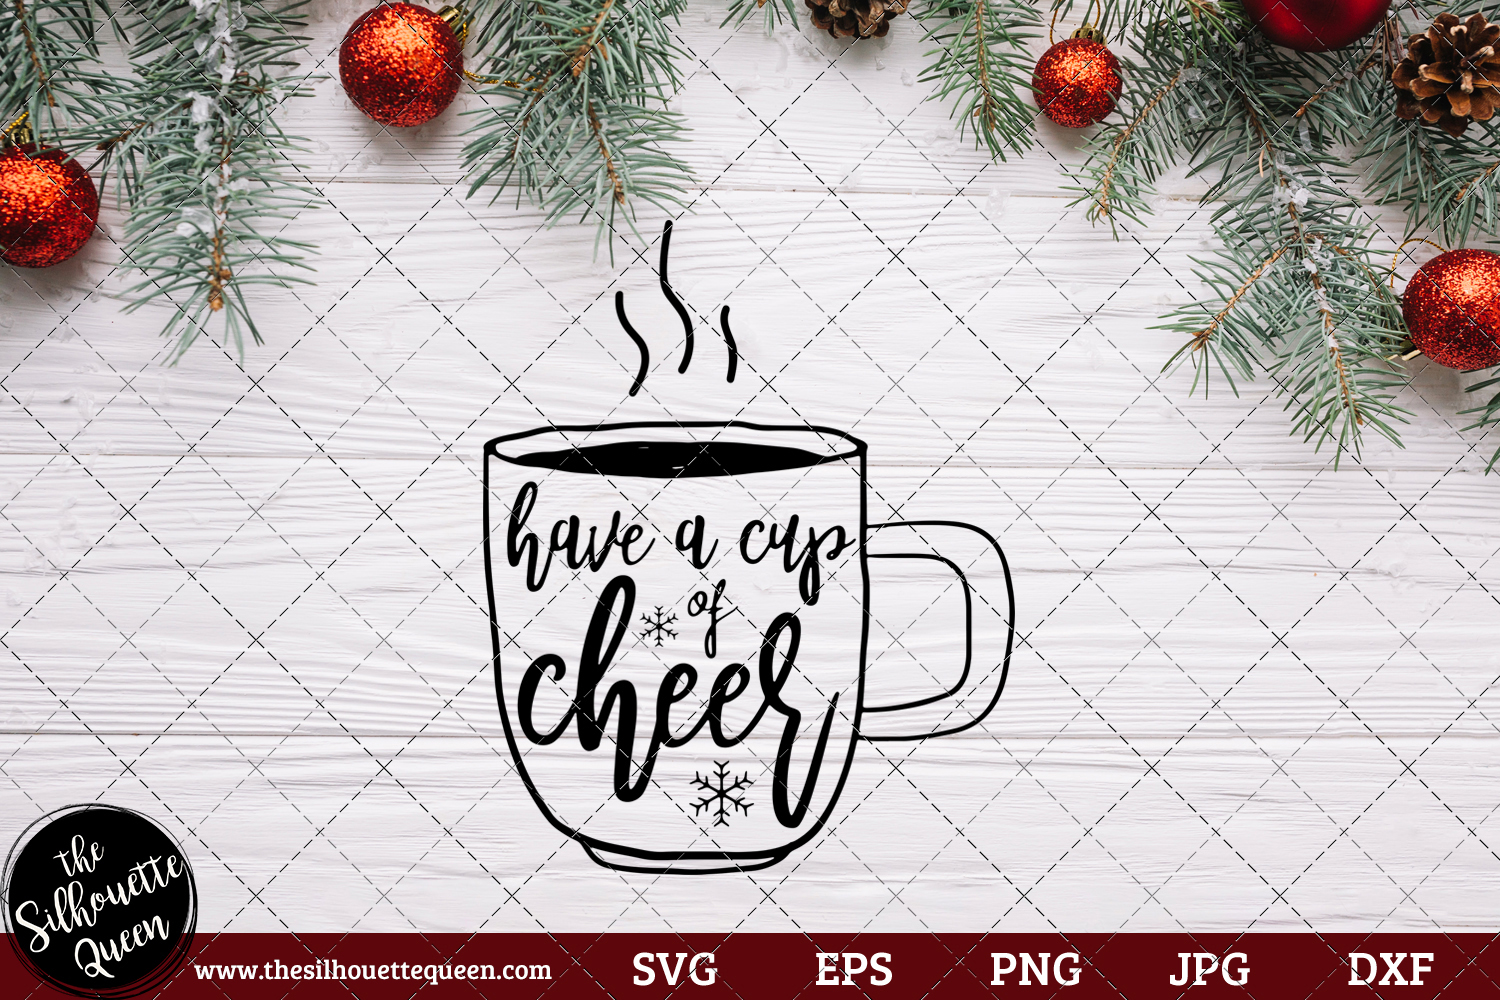 Download Free Have A Cup Of Cheer Saying Graphic By Thesilhouettequeenshop for Cricut Explore, Silhouette and other cutting machines.